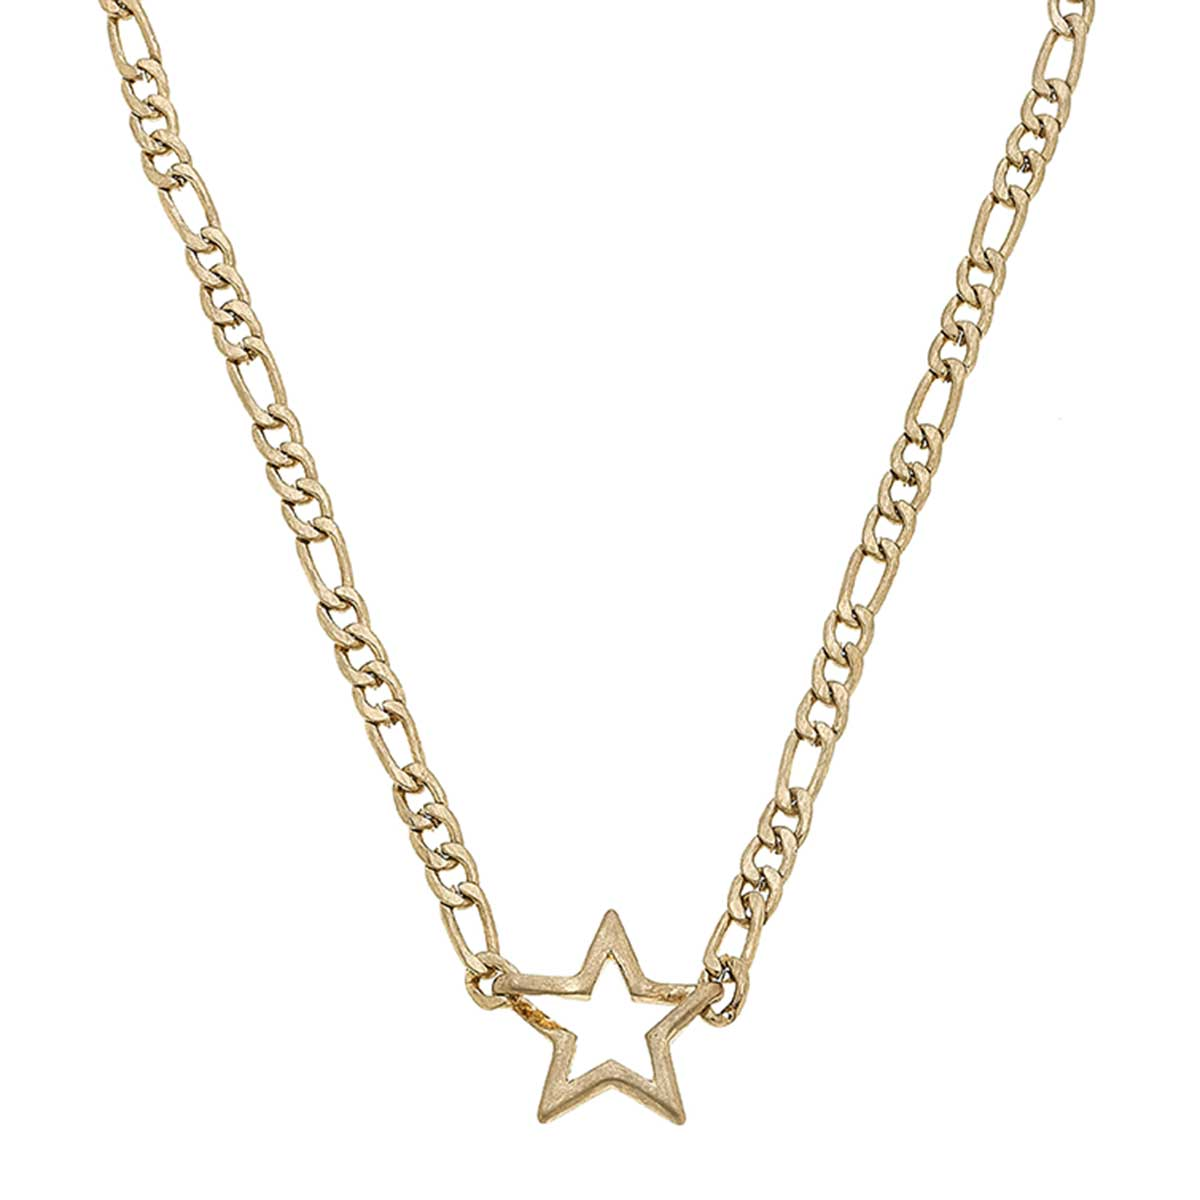 Abigail Star Layering Necklace in Worn Gold